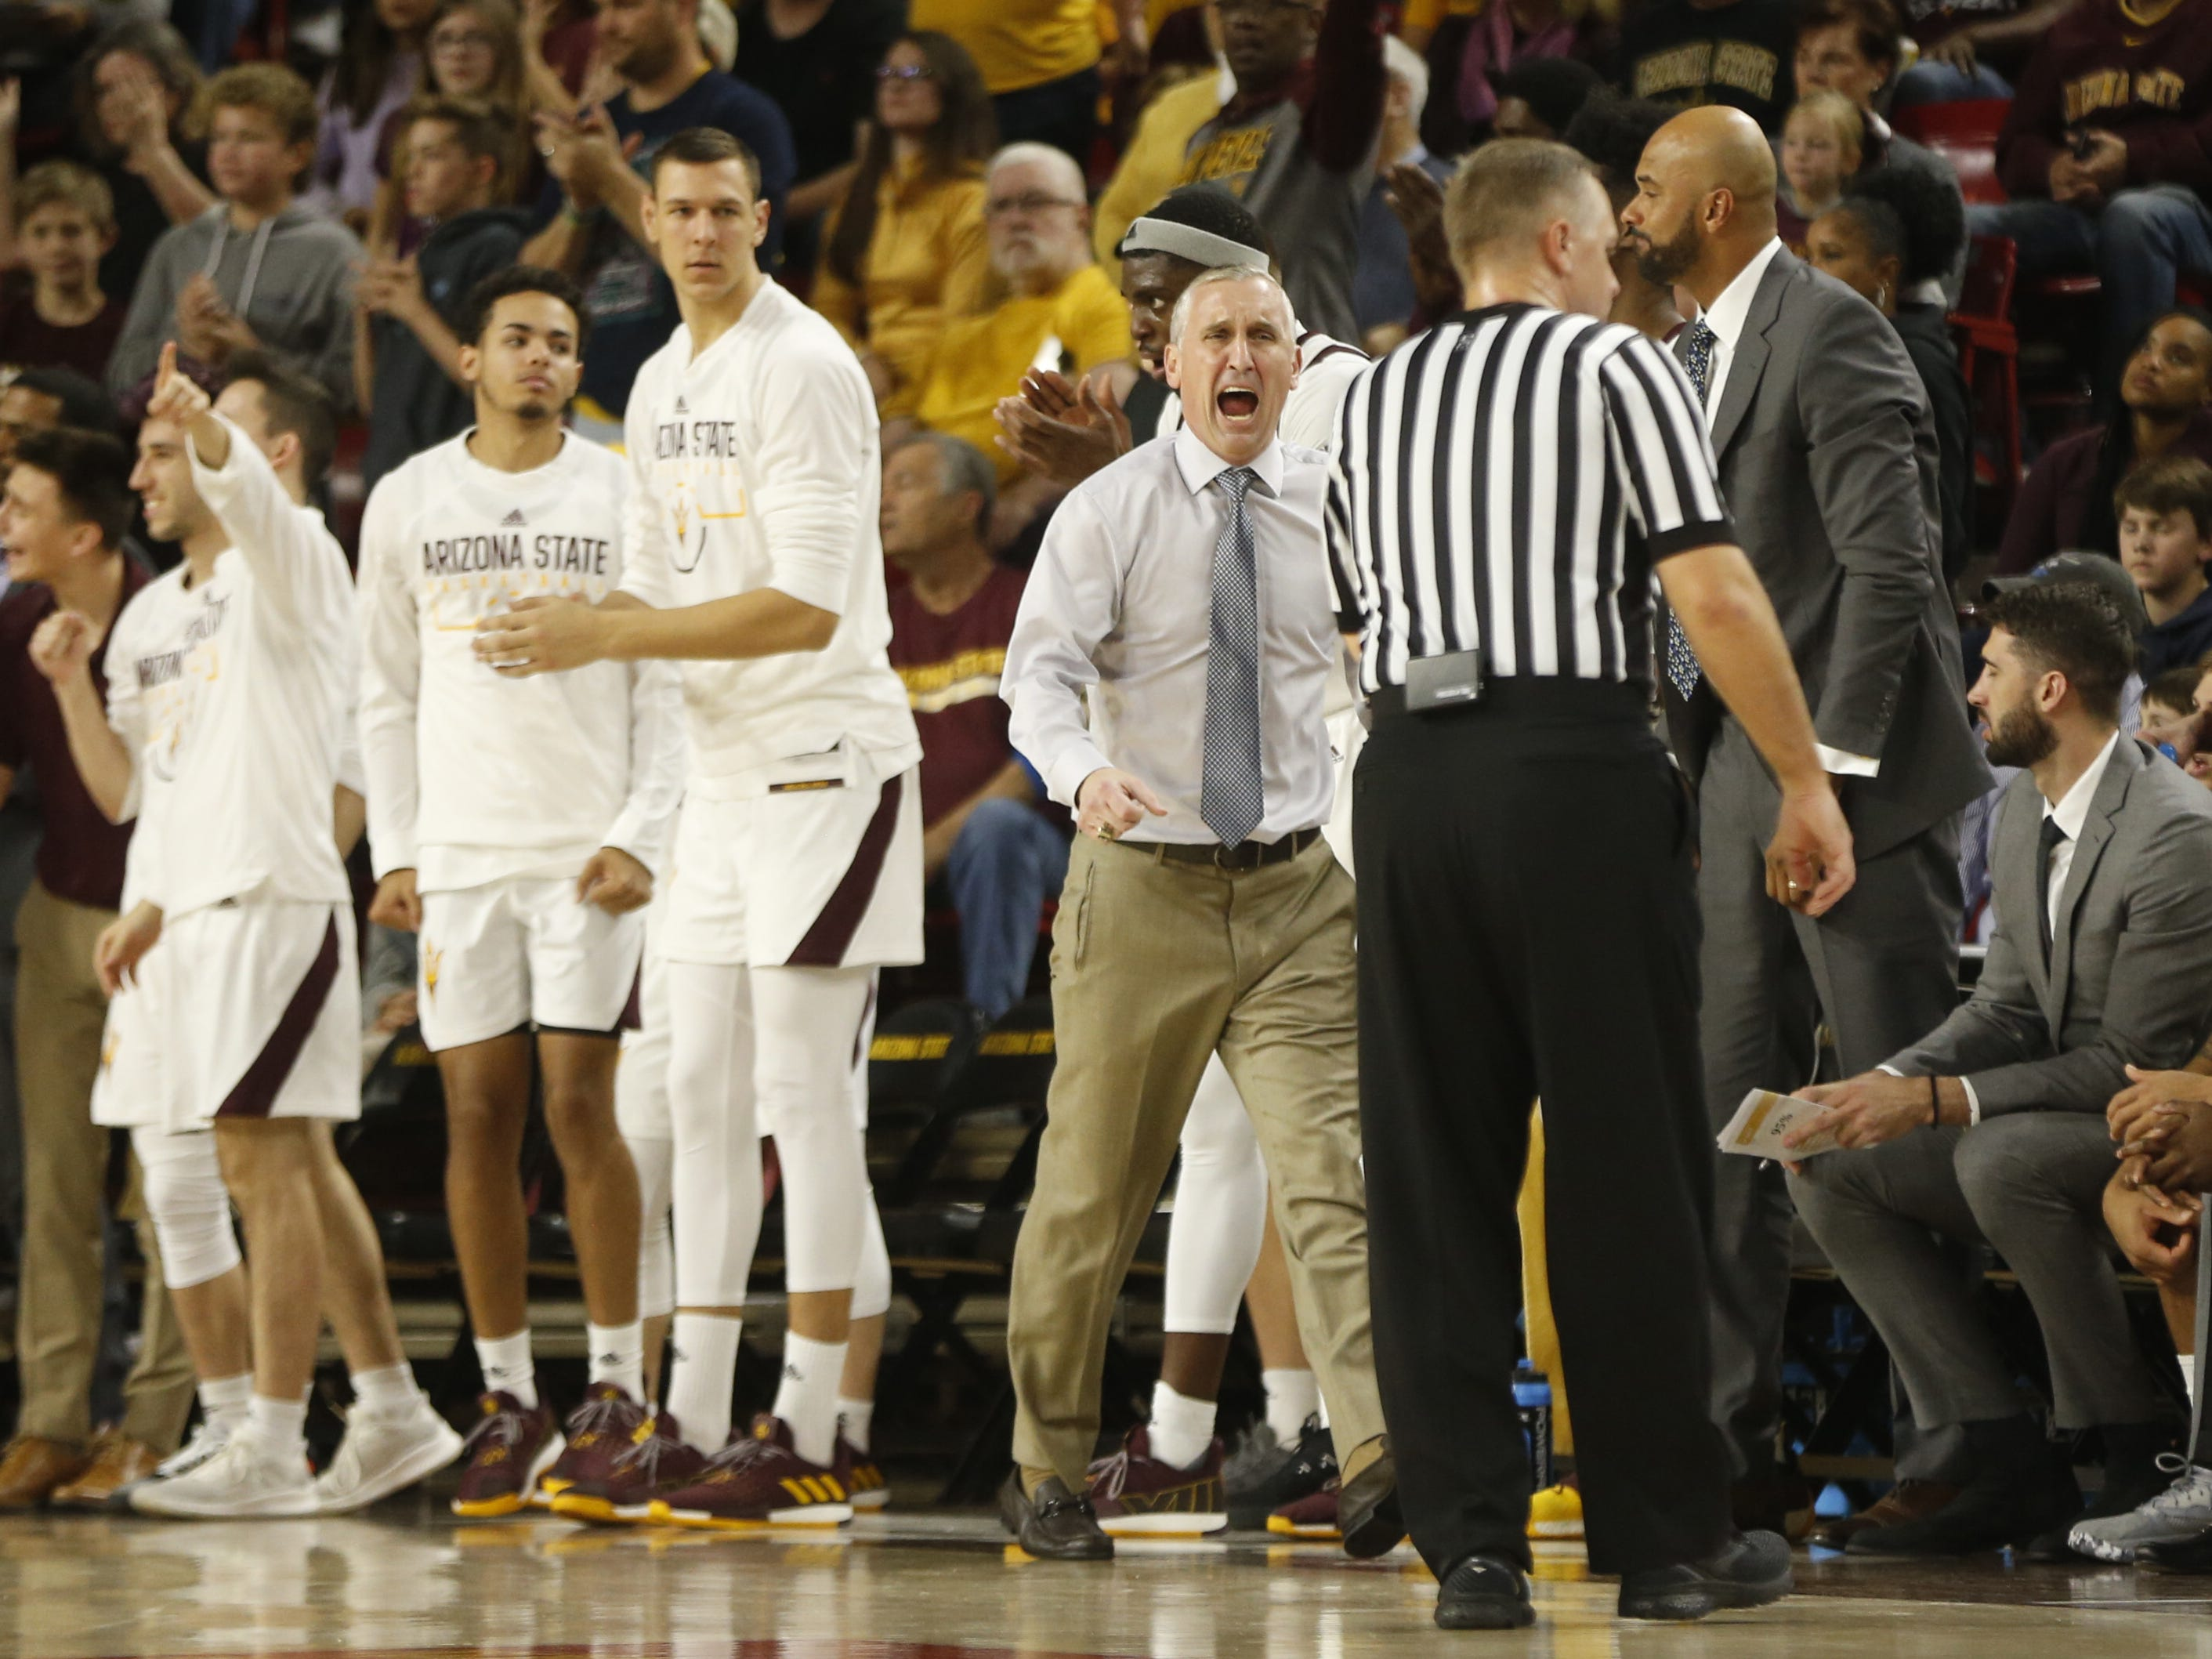 ASU's head coach Bobby Hurley yells at an official arguing a call during the first half against Princeton at Wells Fargo Arena in Tempe, Ariz. on December 29, 2018.